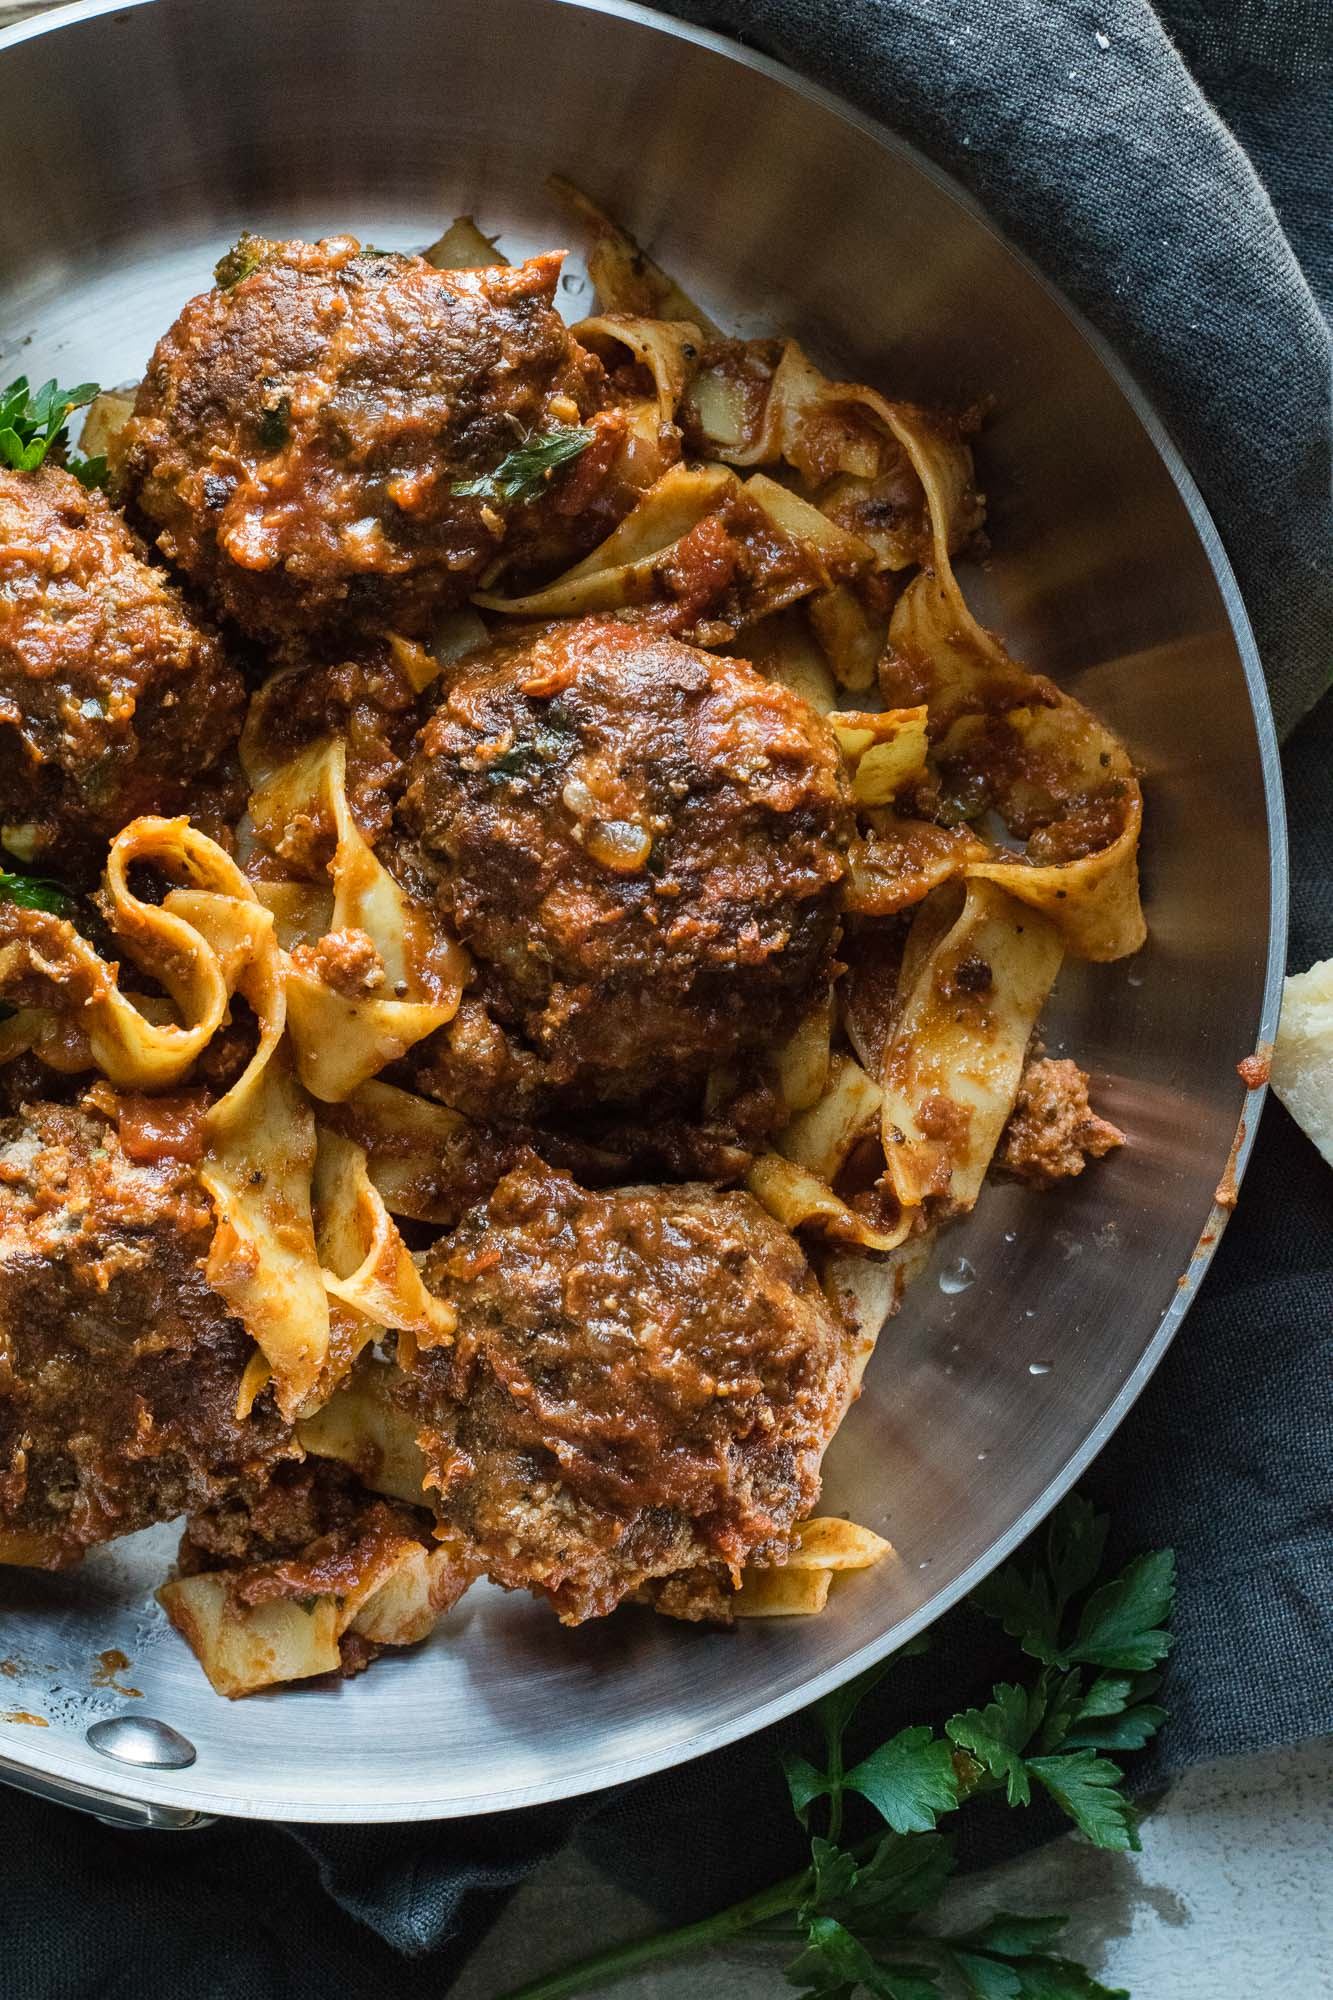 Bison Meatballs with Tagliatelle